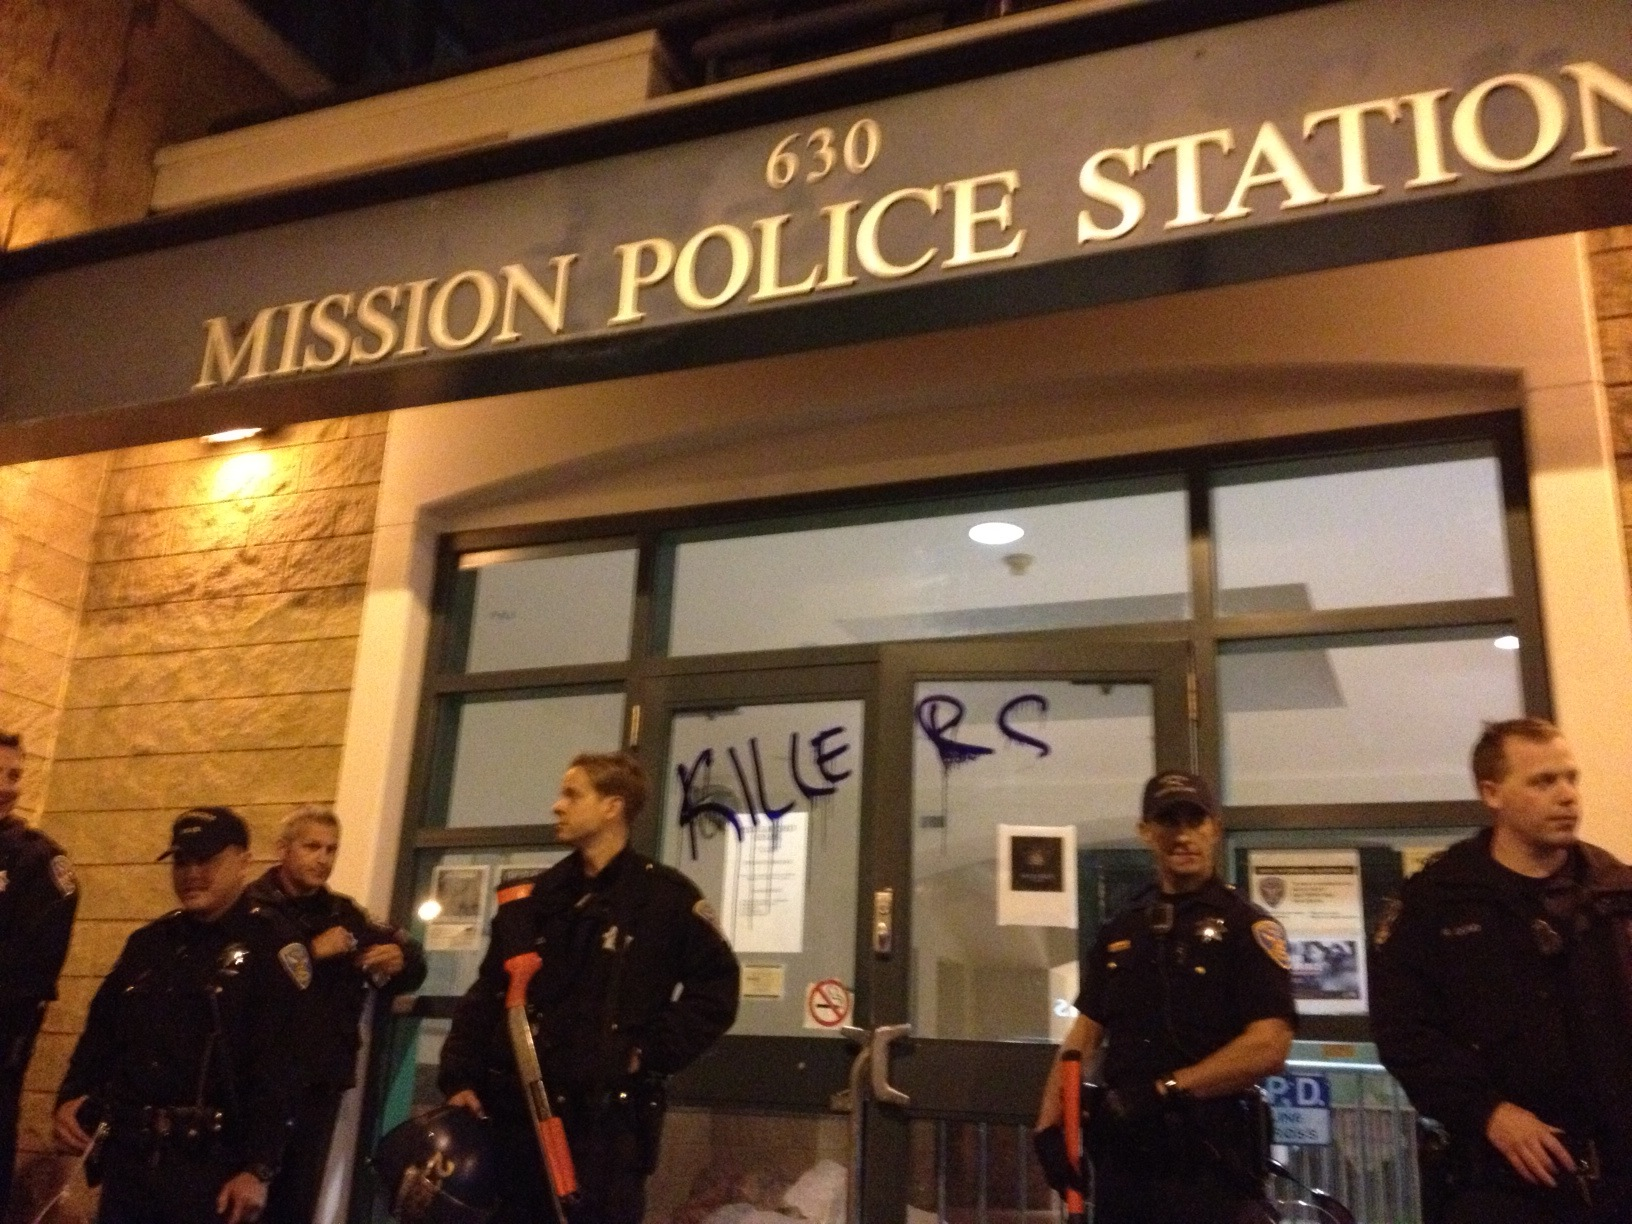 Protesters vandalized the Mission Police Station Thursday night.